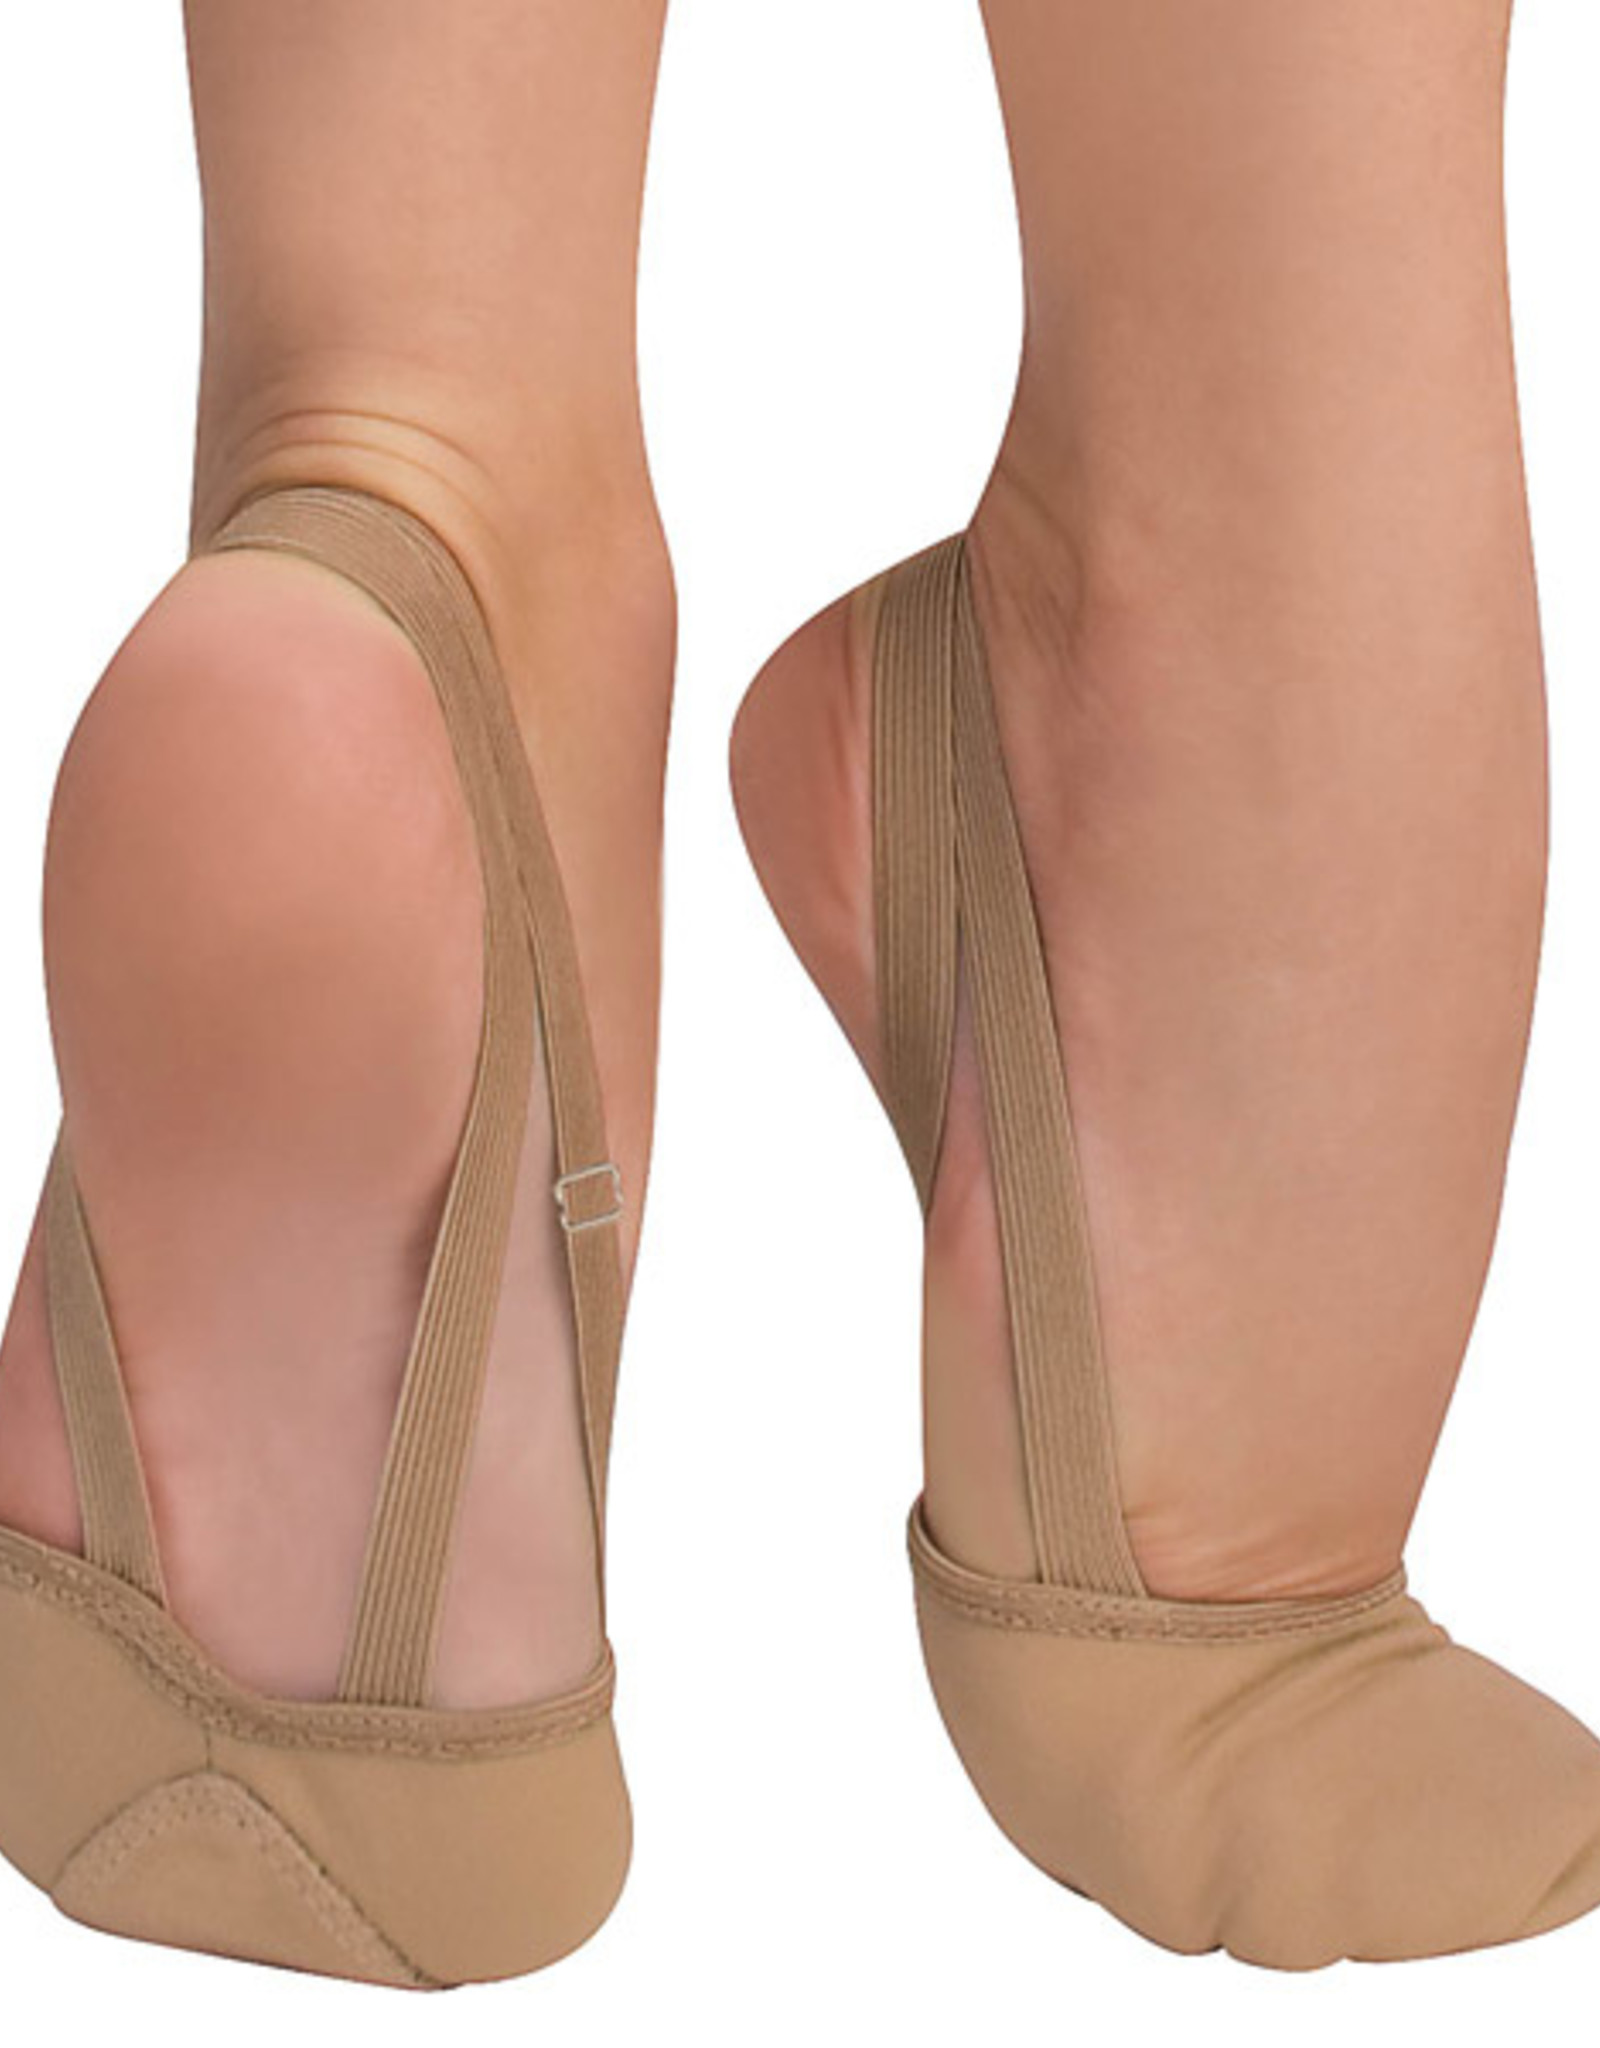 ANGELO LUZIO DEMI-CHAUSSONS EN TOILE TOTAL STRETCH (620A)